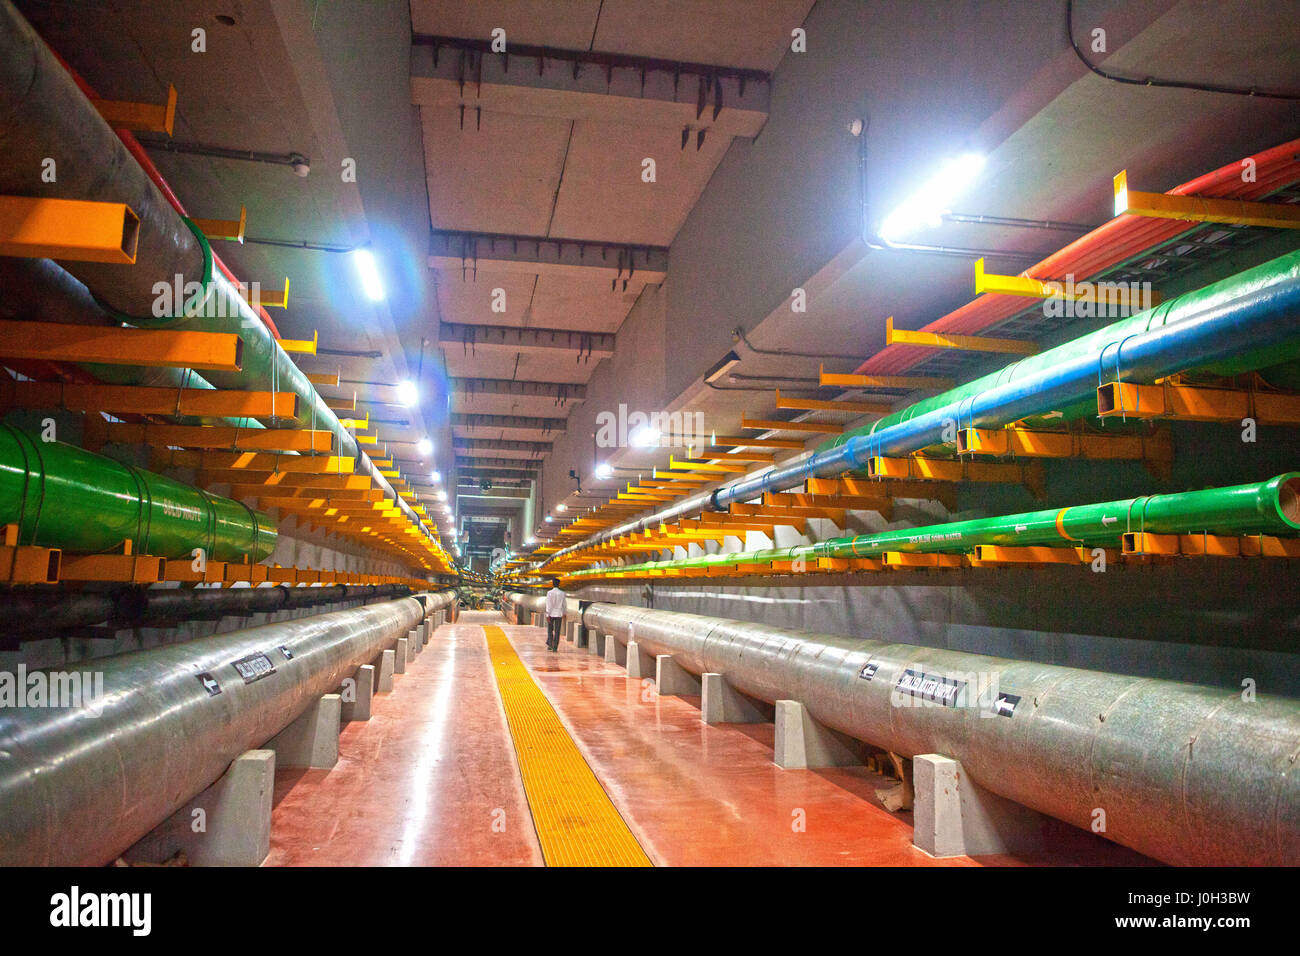 Gift City, Gujarat, India. 20th Mar, 2017. 20 March 2017 - GIFT city, India.An extensive Underground Utility Tunnel - Stock Image